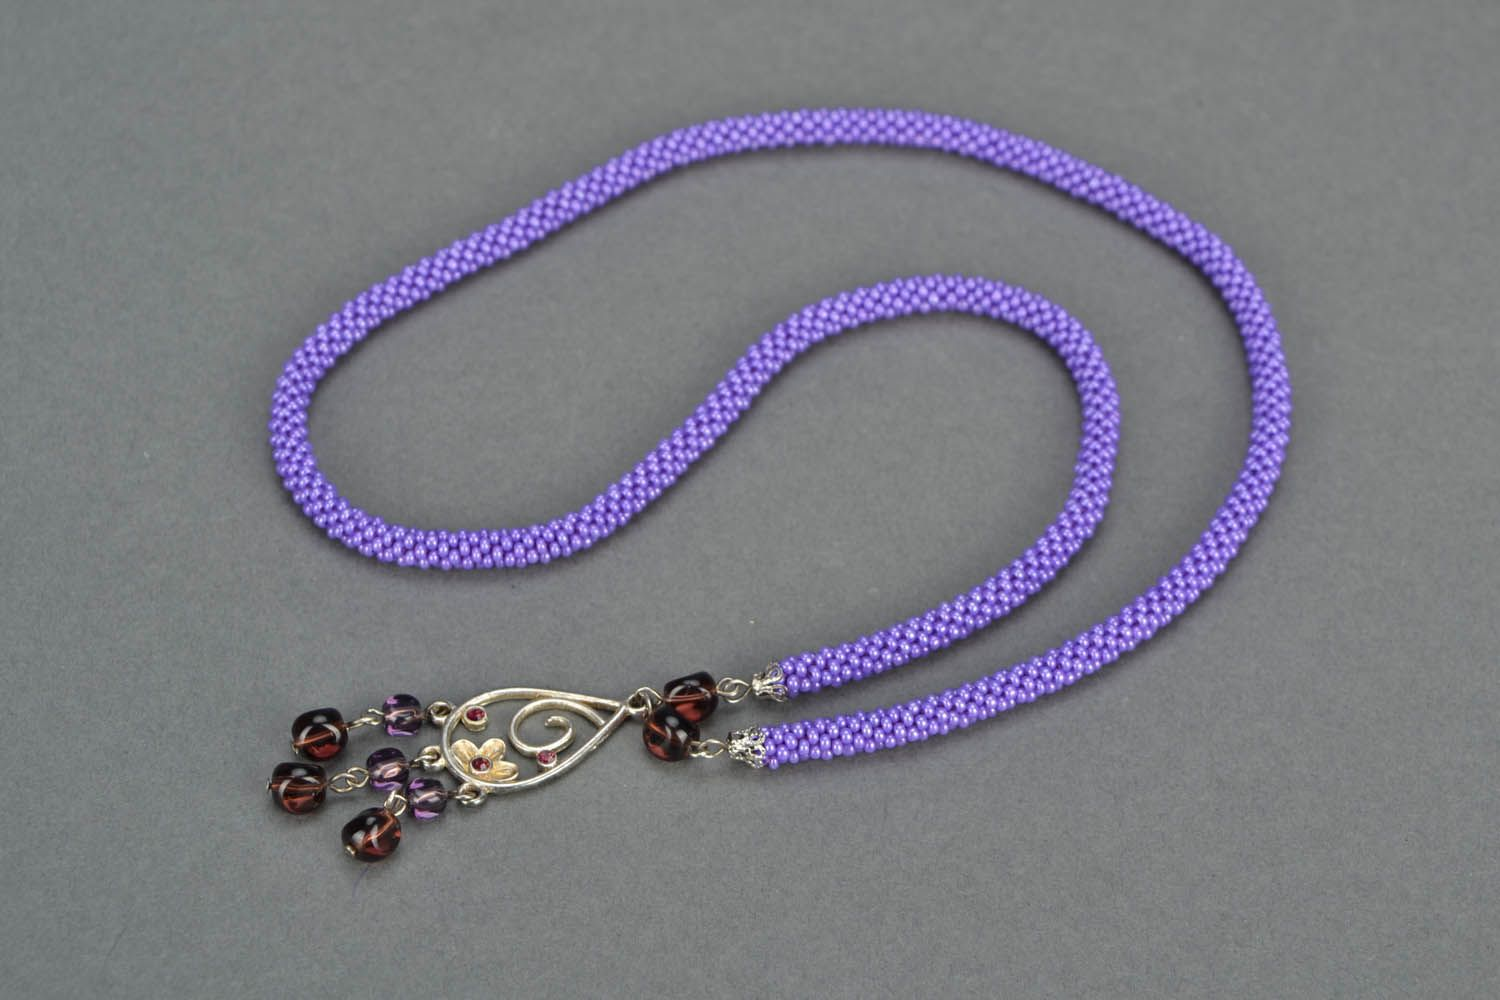 Lilac beaded necklace photo 4